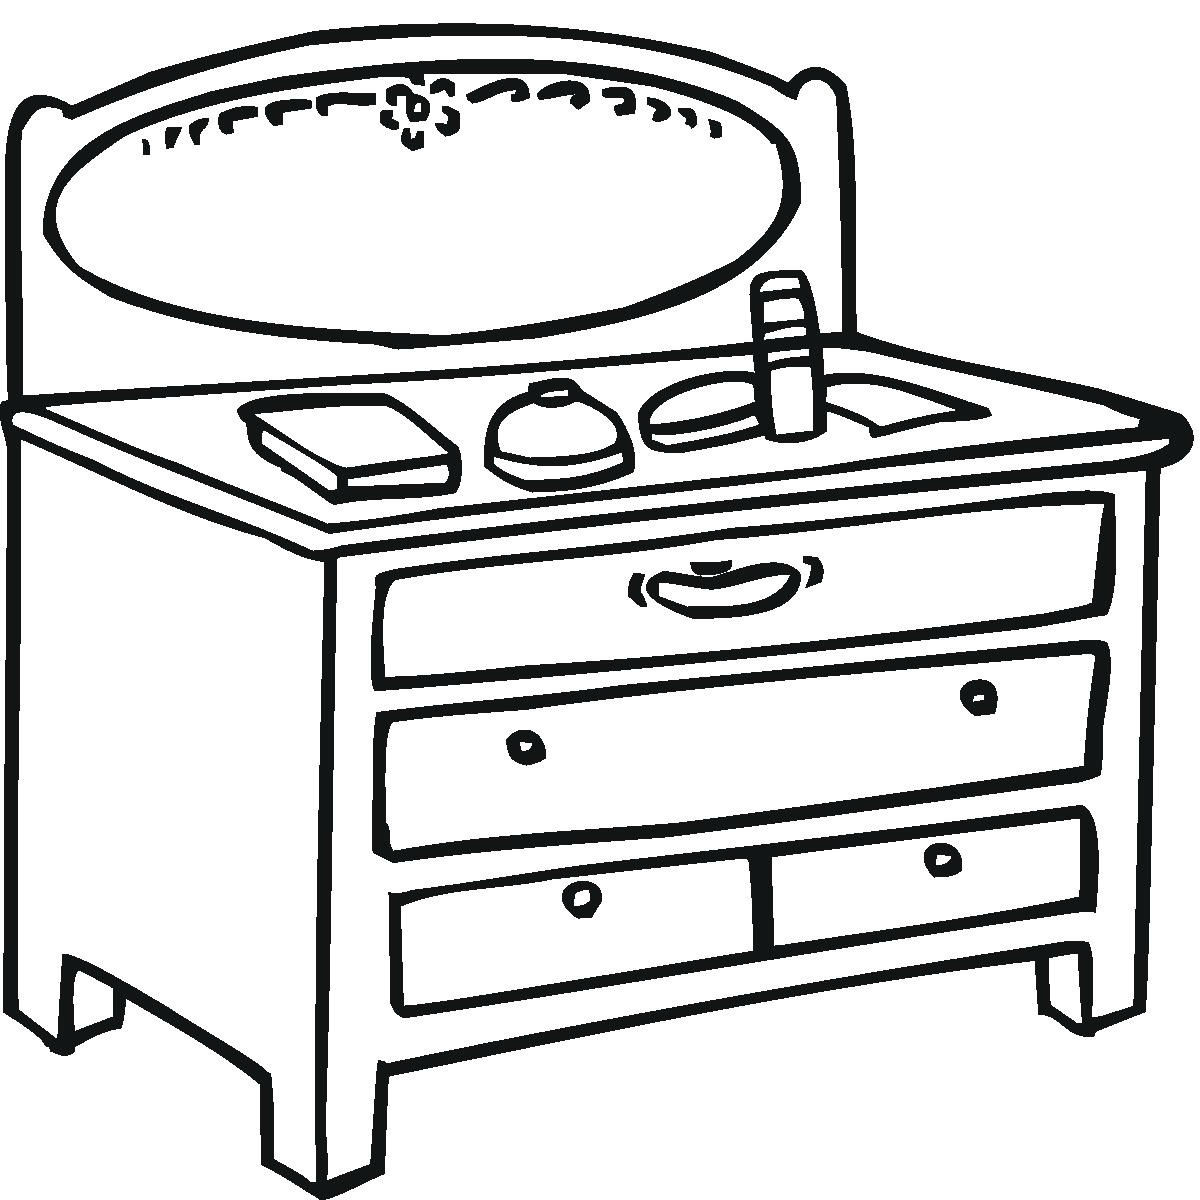 Coloring pages kitchen - Kitchen Table Coloring Page Kitchen Safety Coloring Page